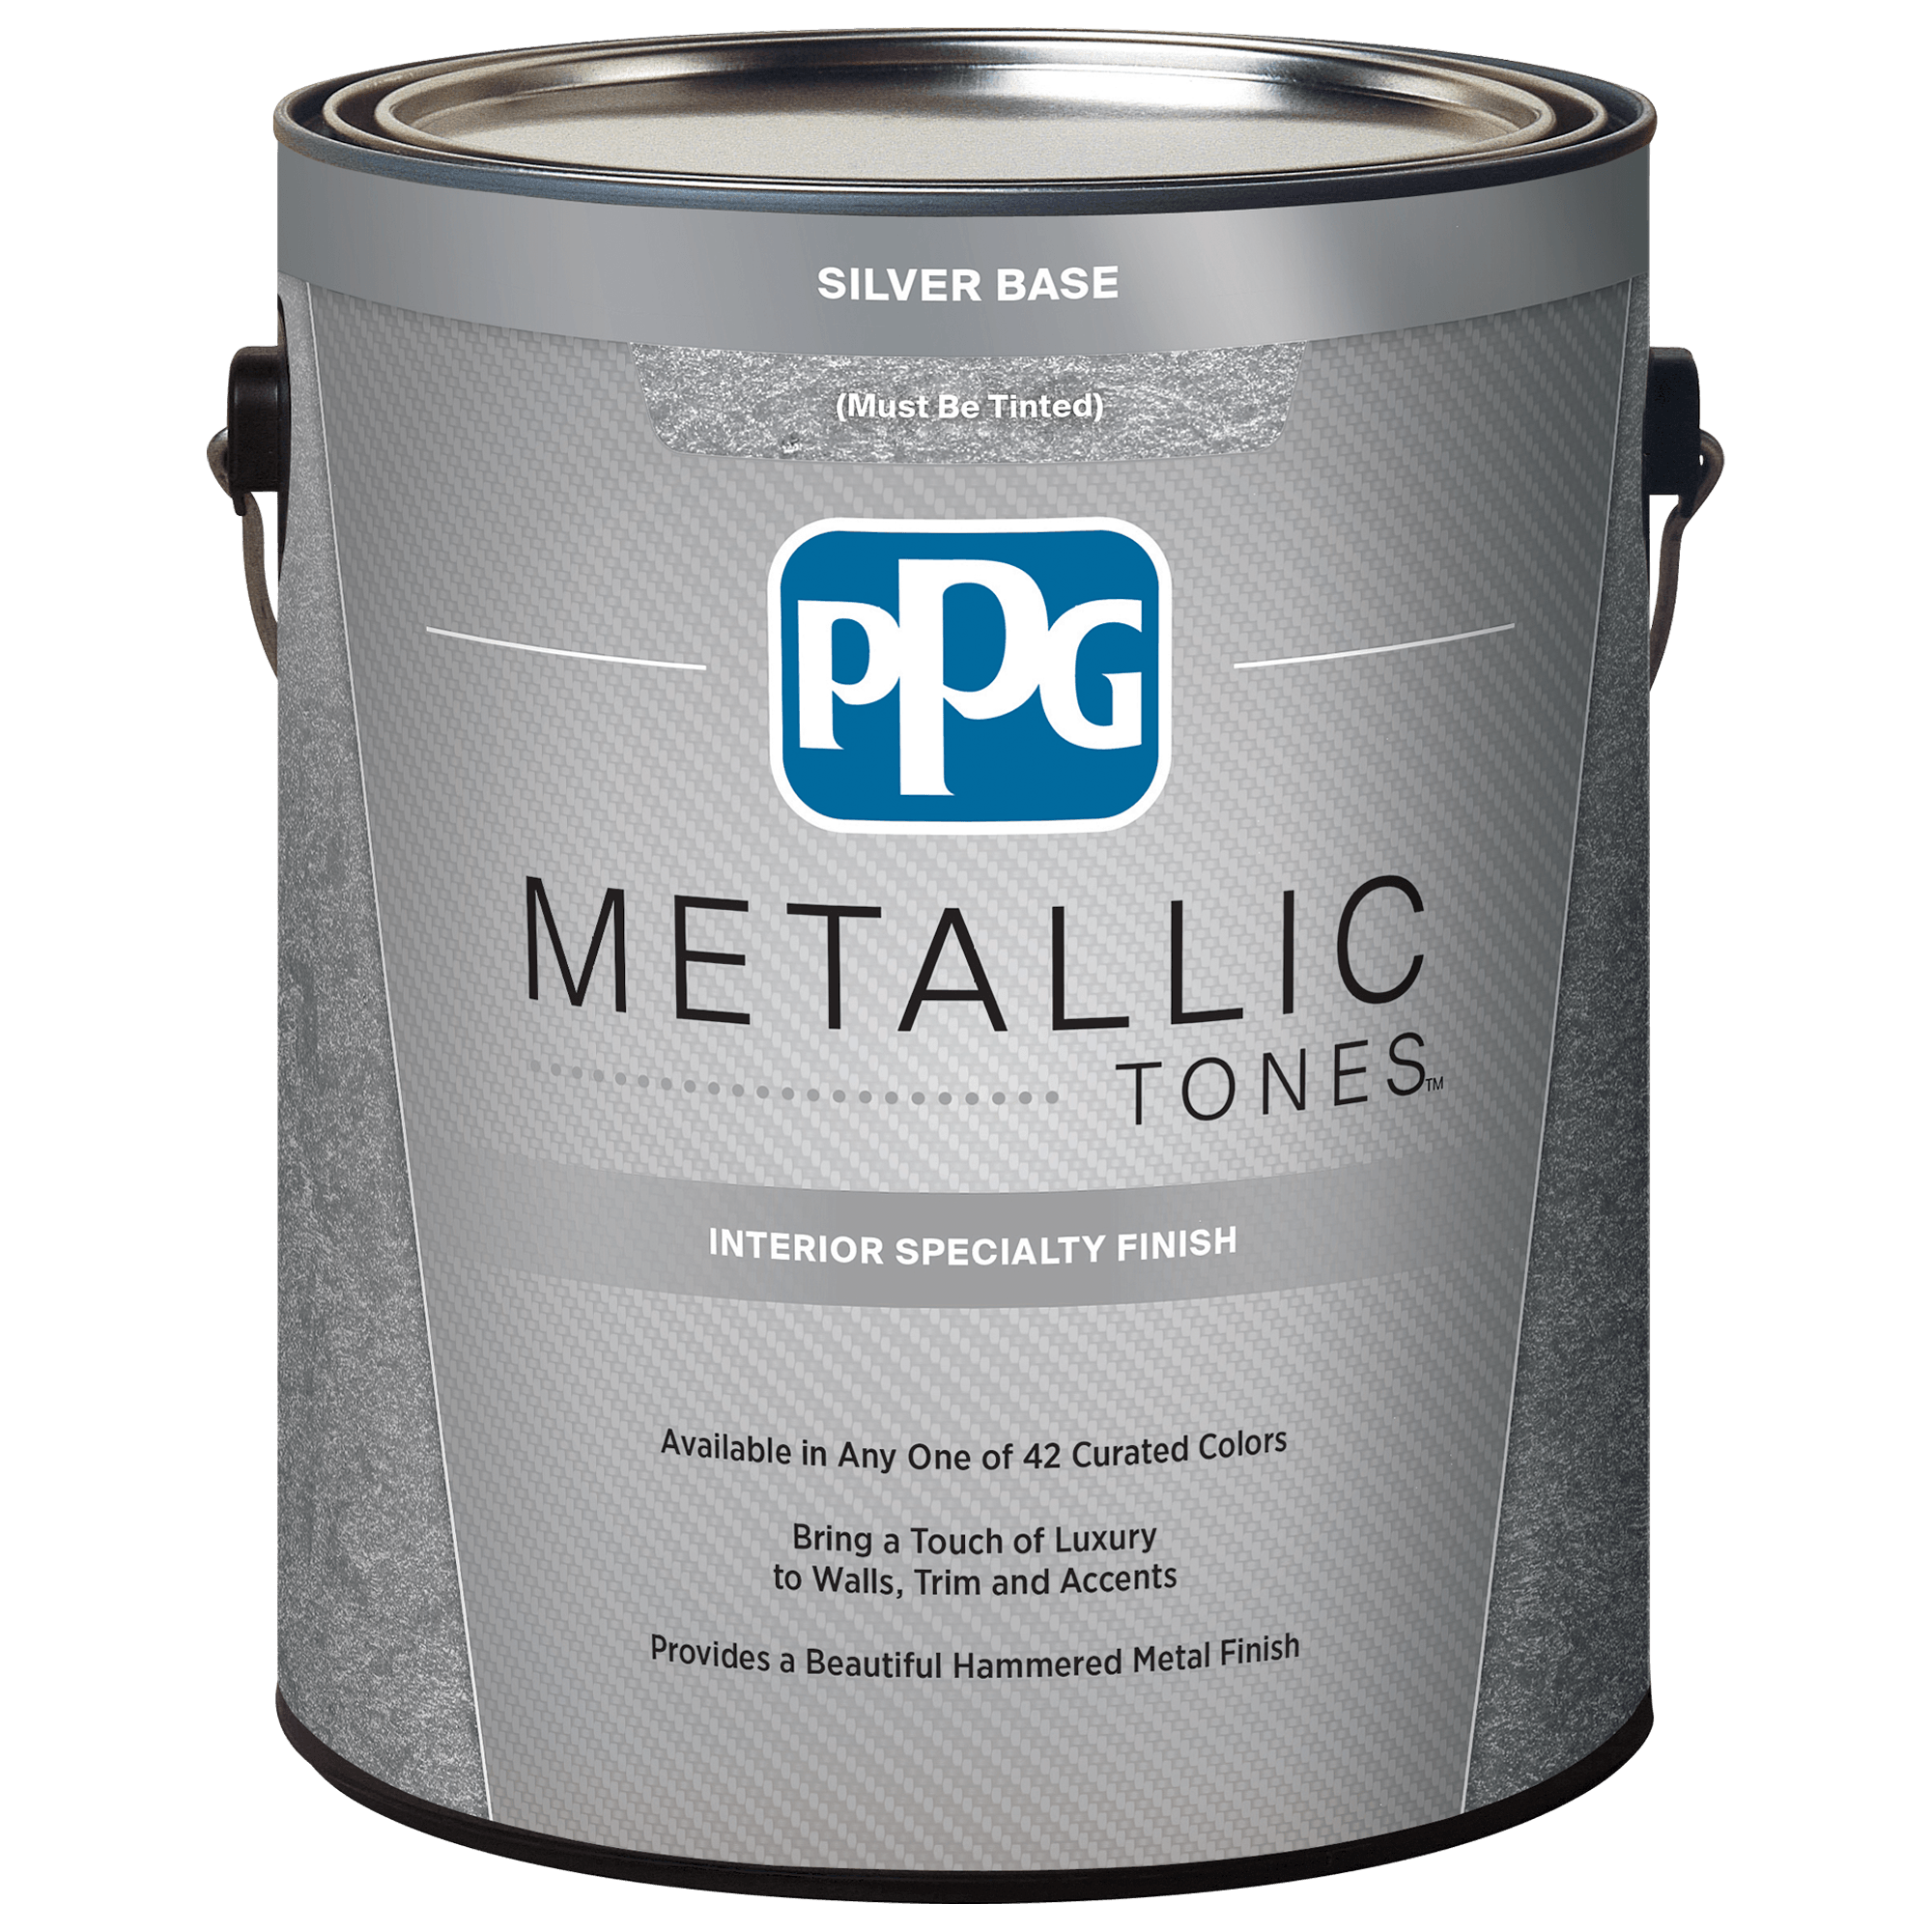 Metallic Tones Interior Professional Quality Paint Products Ppg